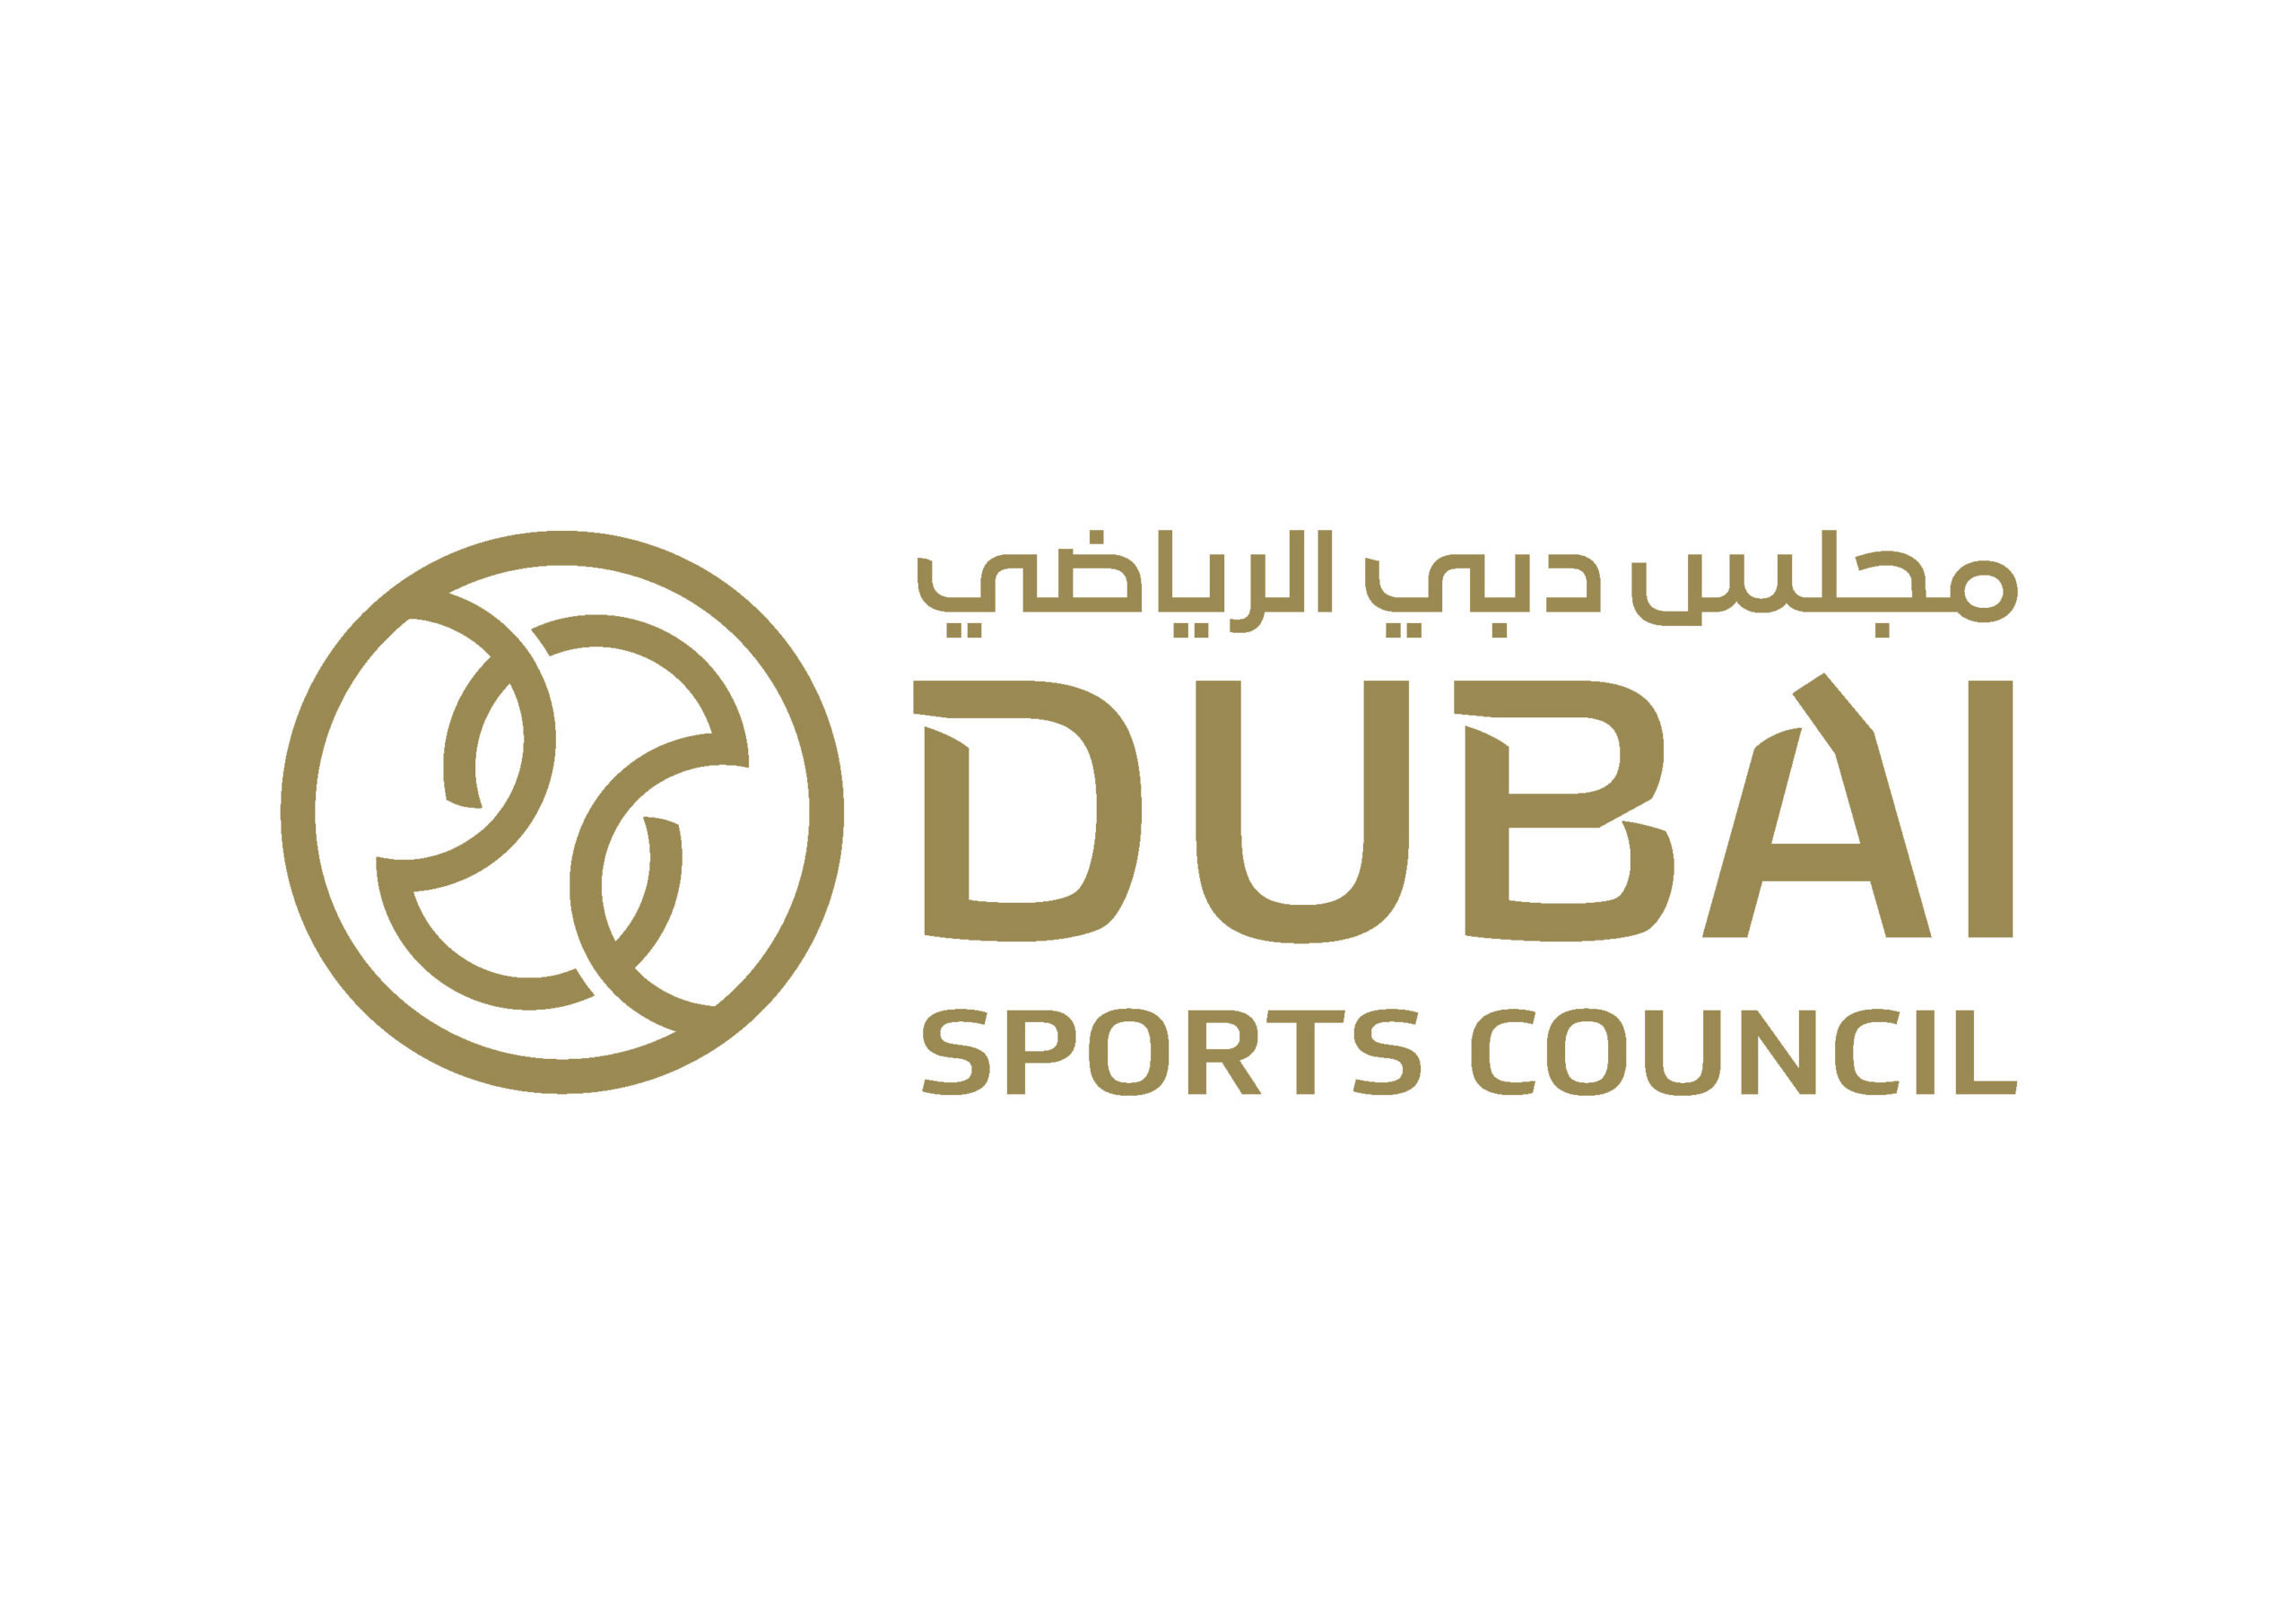 Dubai council